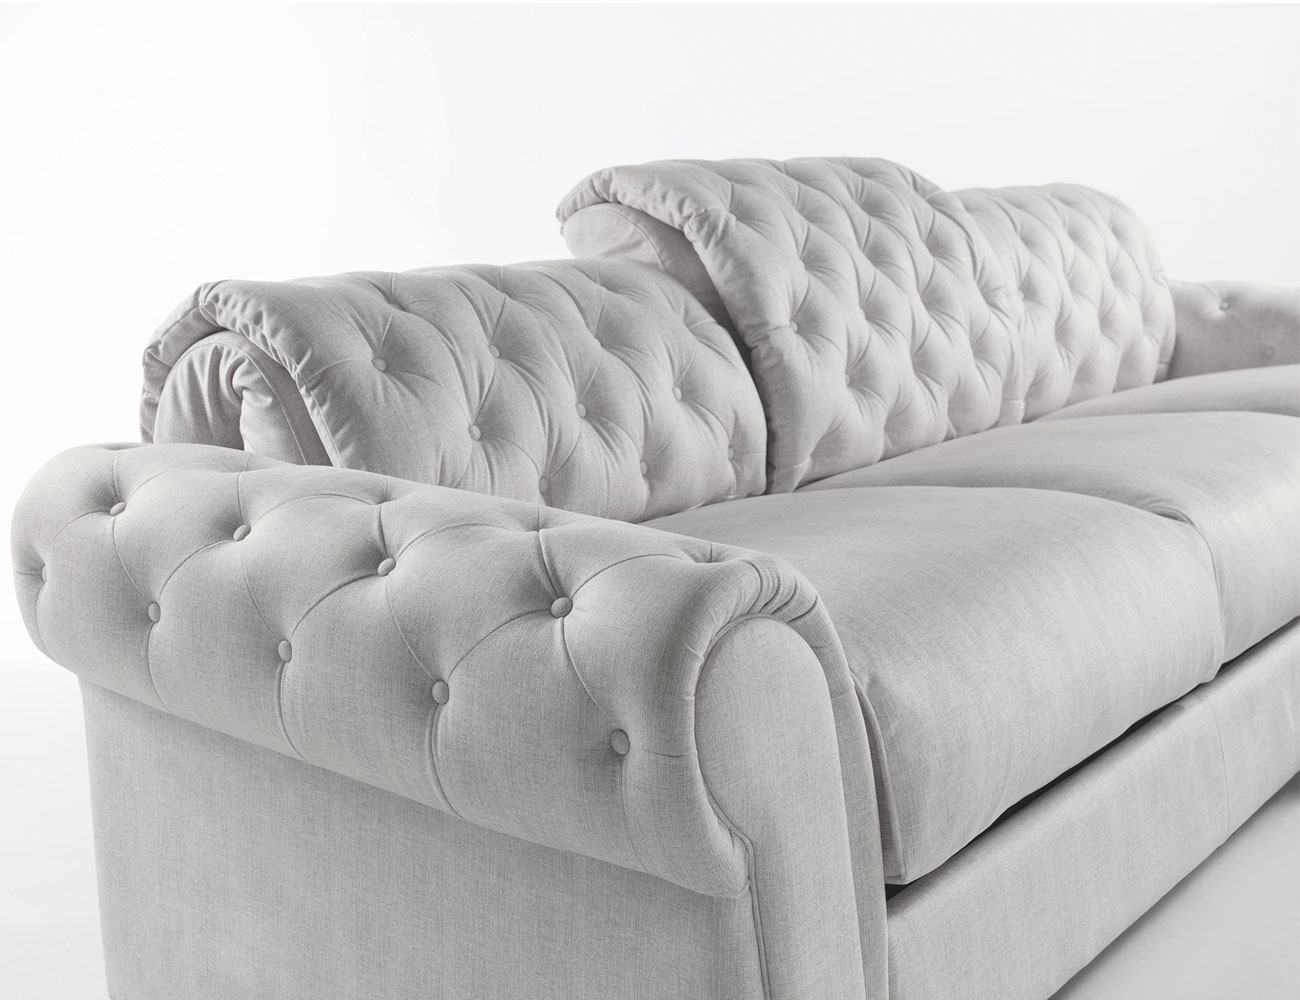 Sofa chaiselongue gran lujo decorativo capitone blanco tela 125